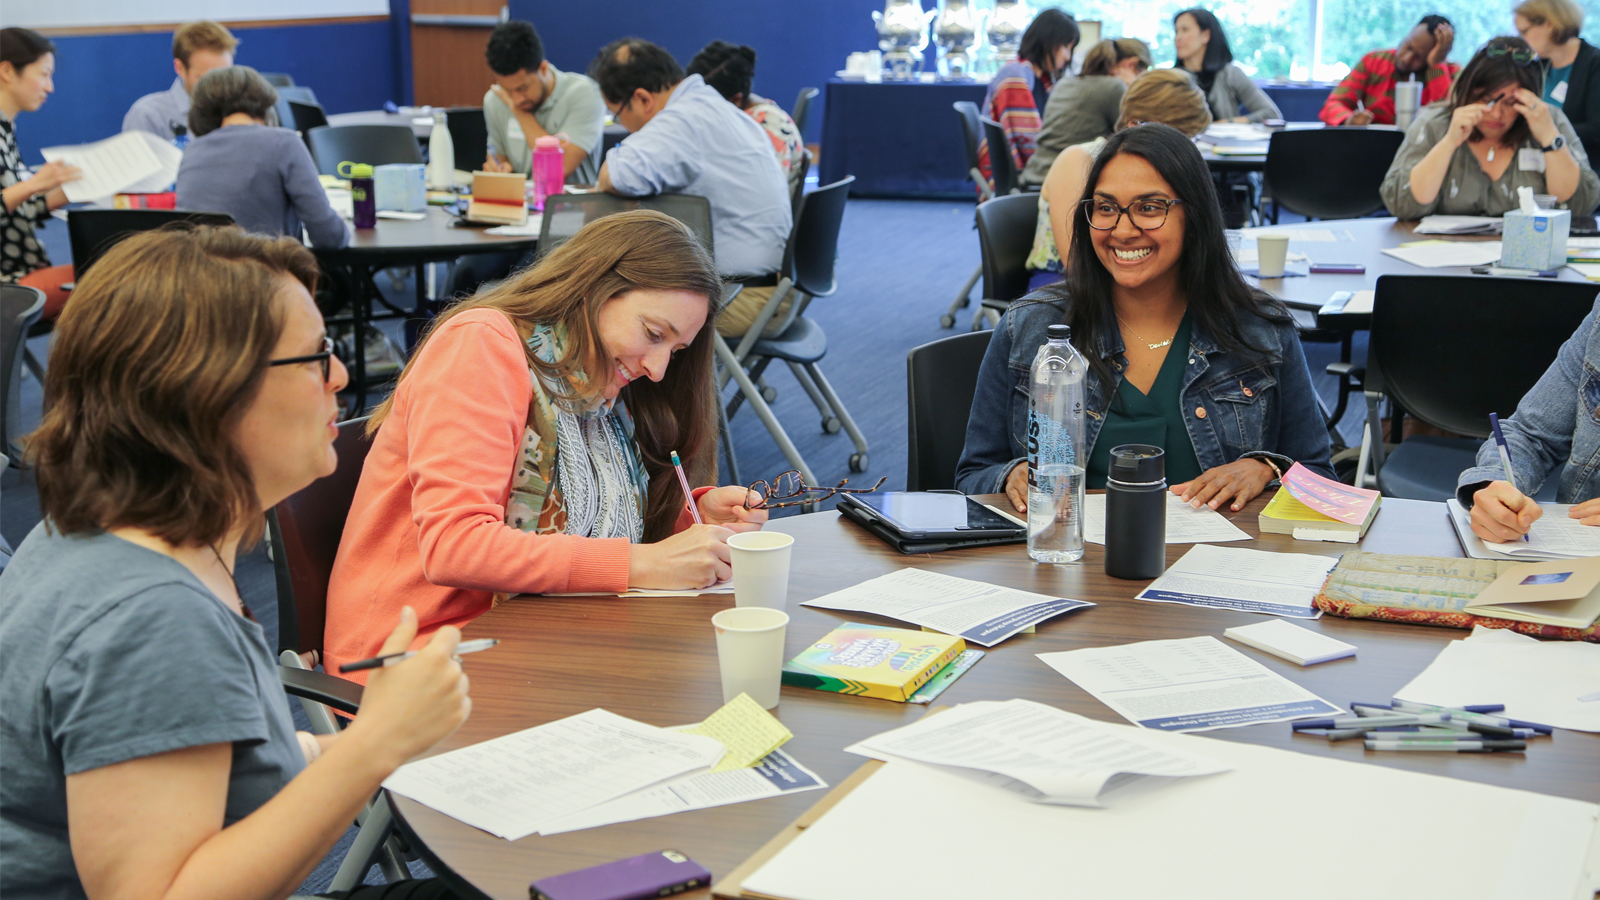 Participants enjoy a lighter moment during table discussions.